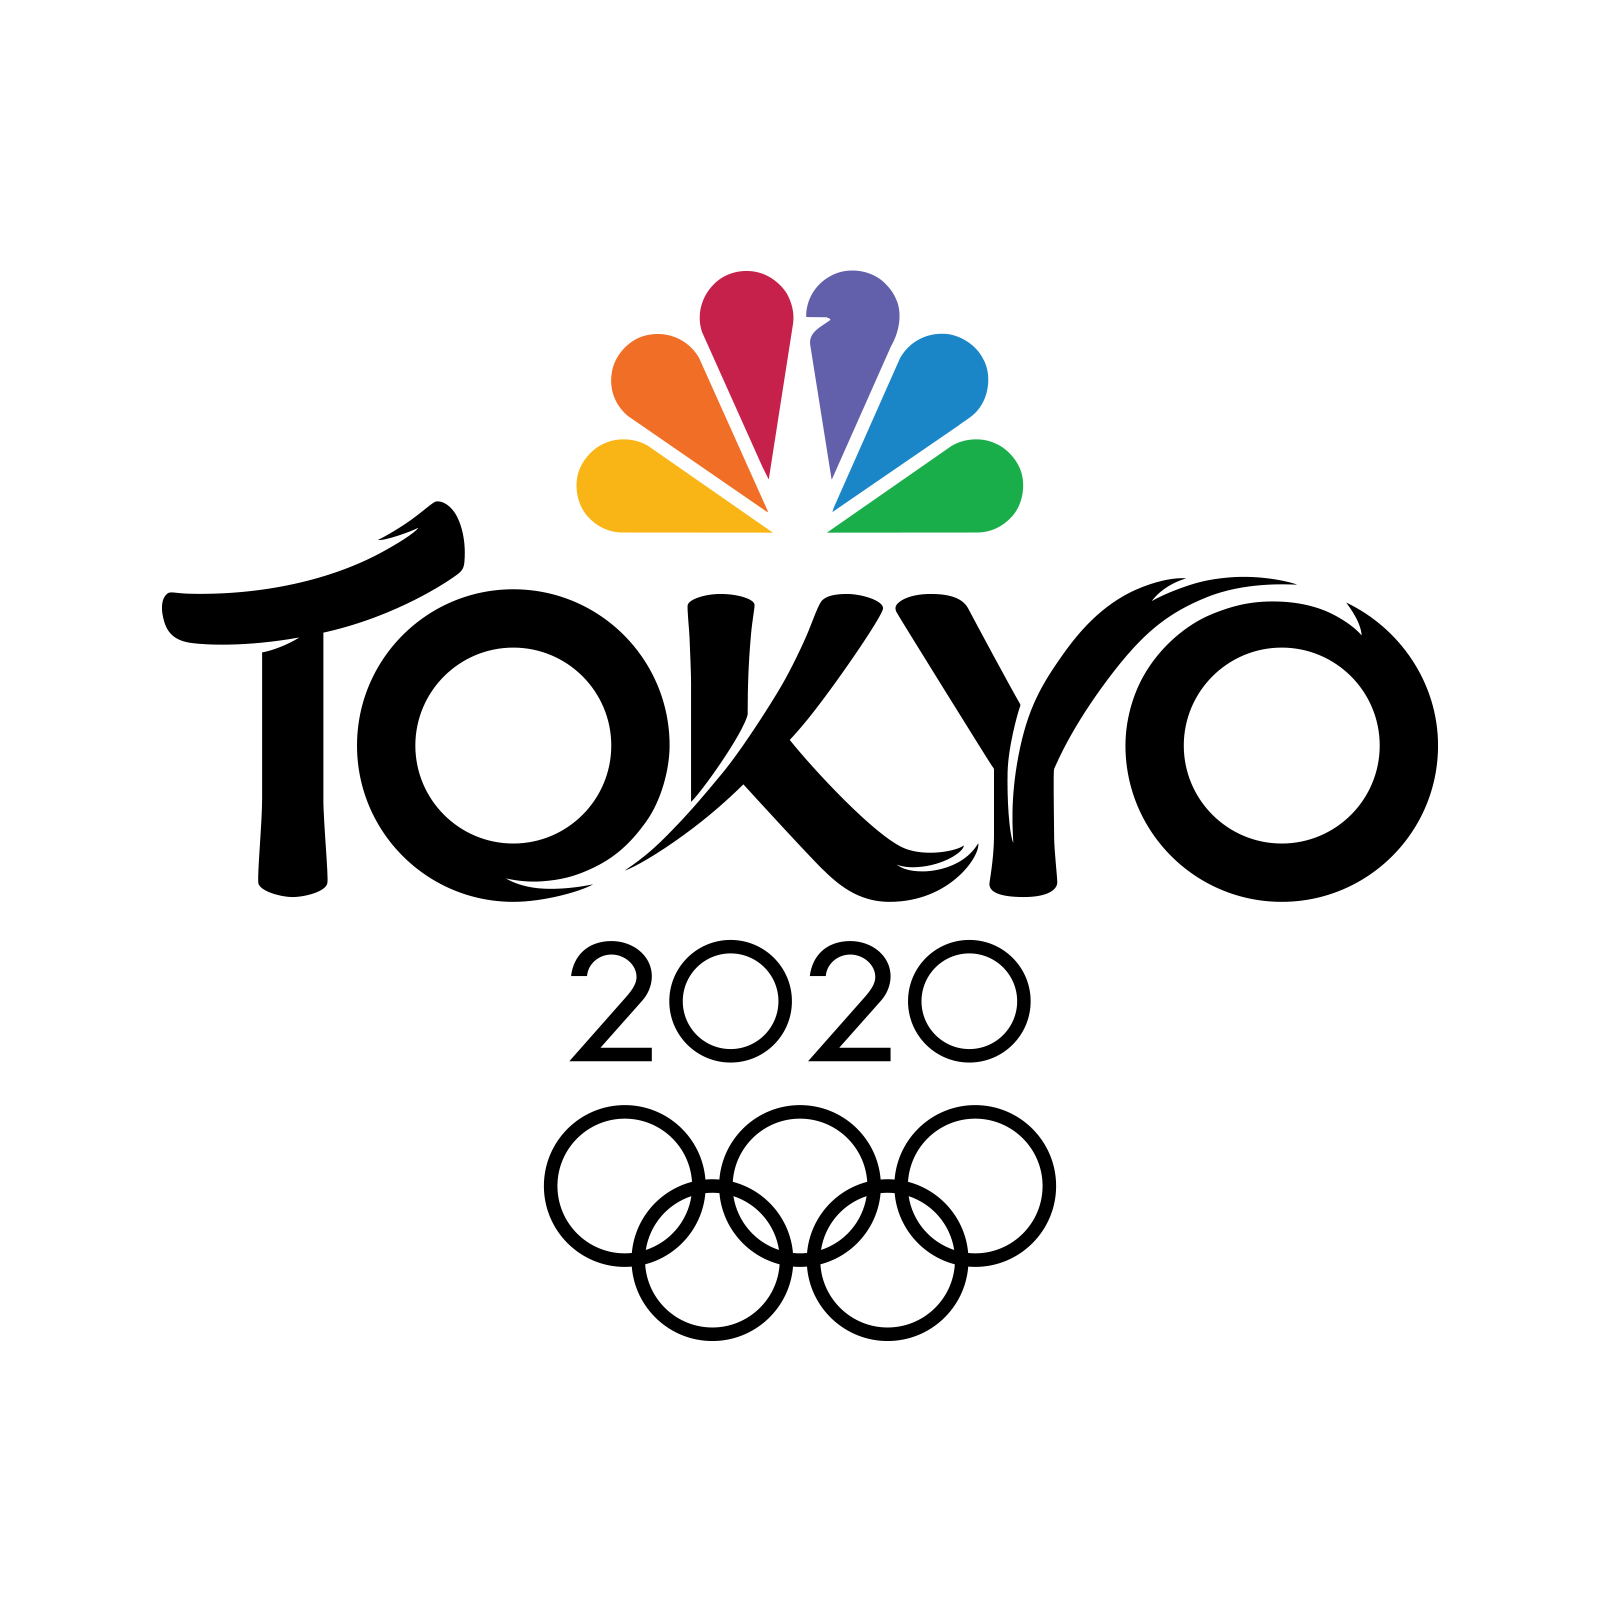 Olympic rights-holder NBC has predicted record advertising sales at Tokyo 2020 ©NBC